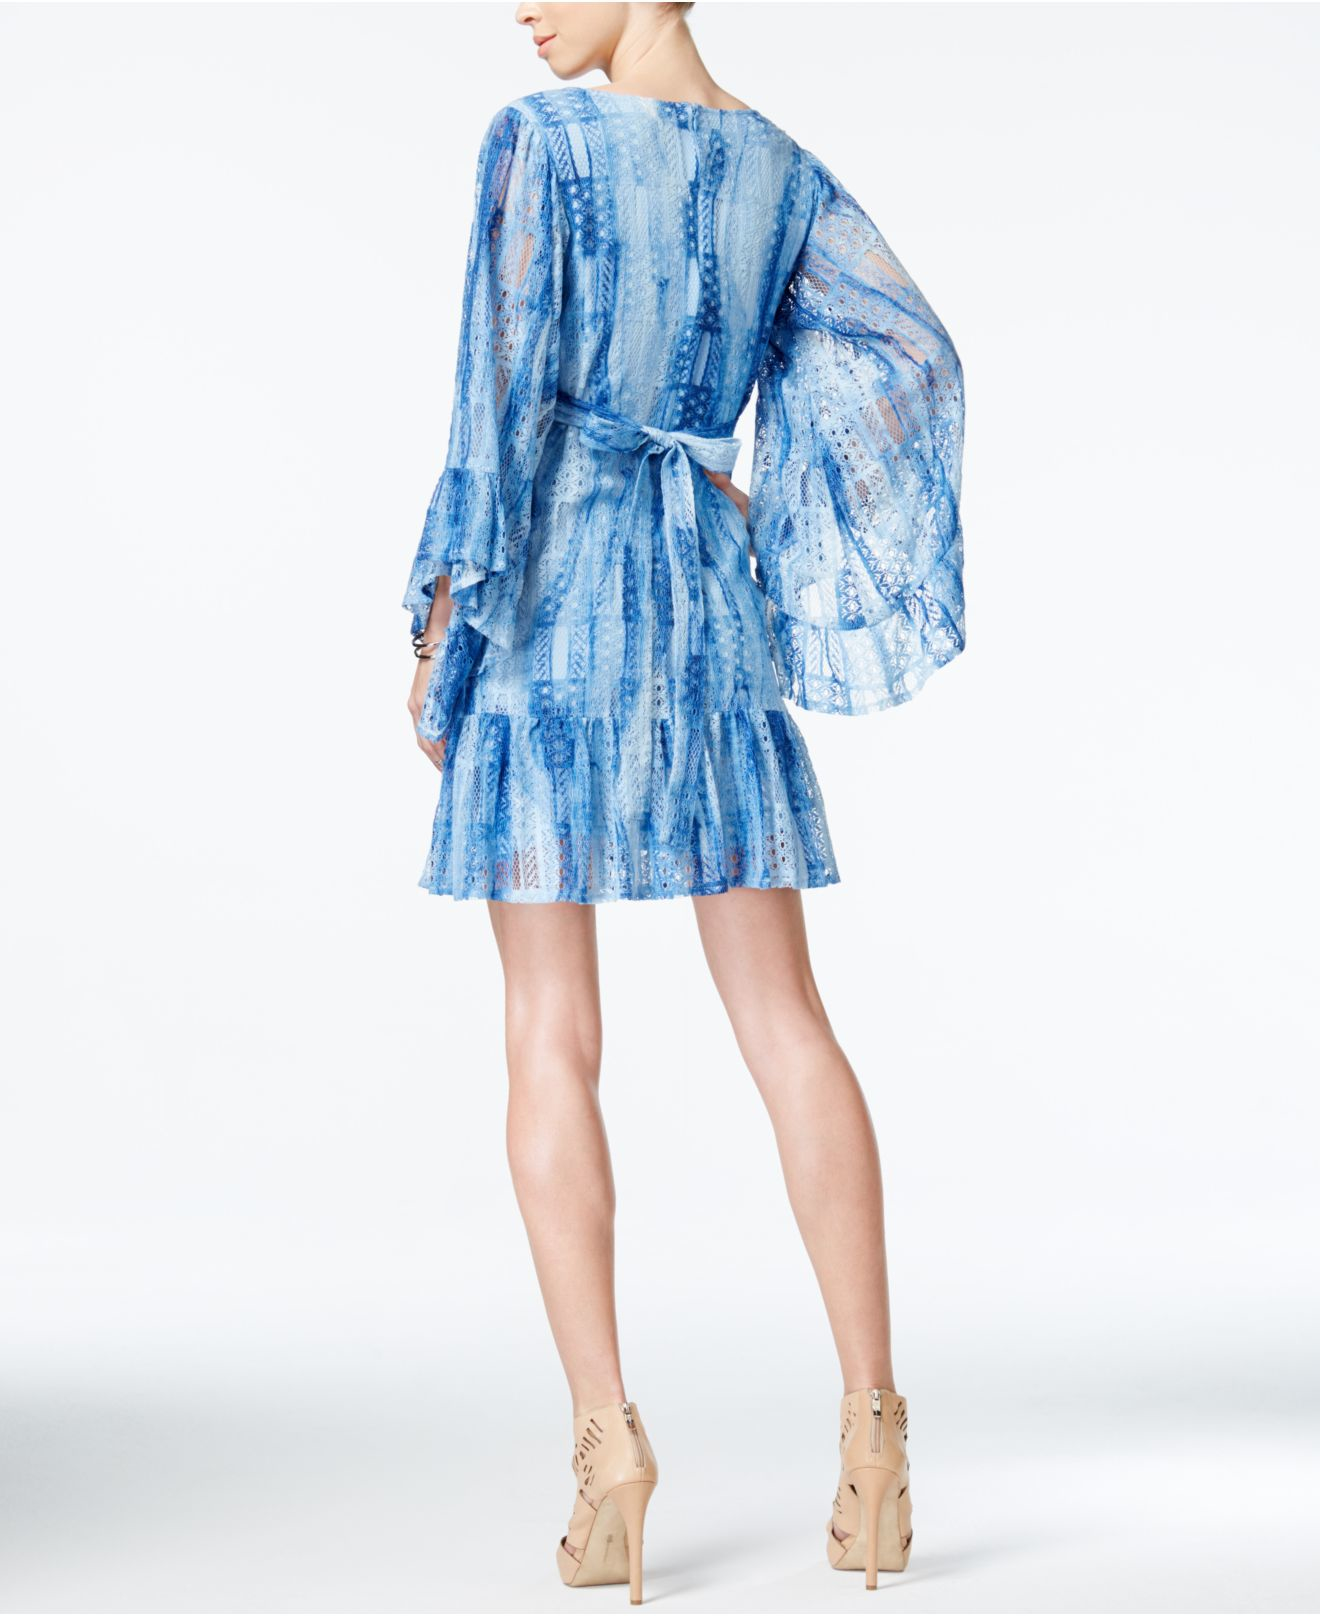 Lyst - Betsey Johnson Printed Empire-waist Lace Dress in Blue